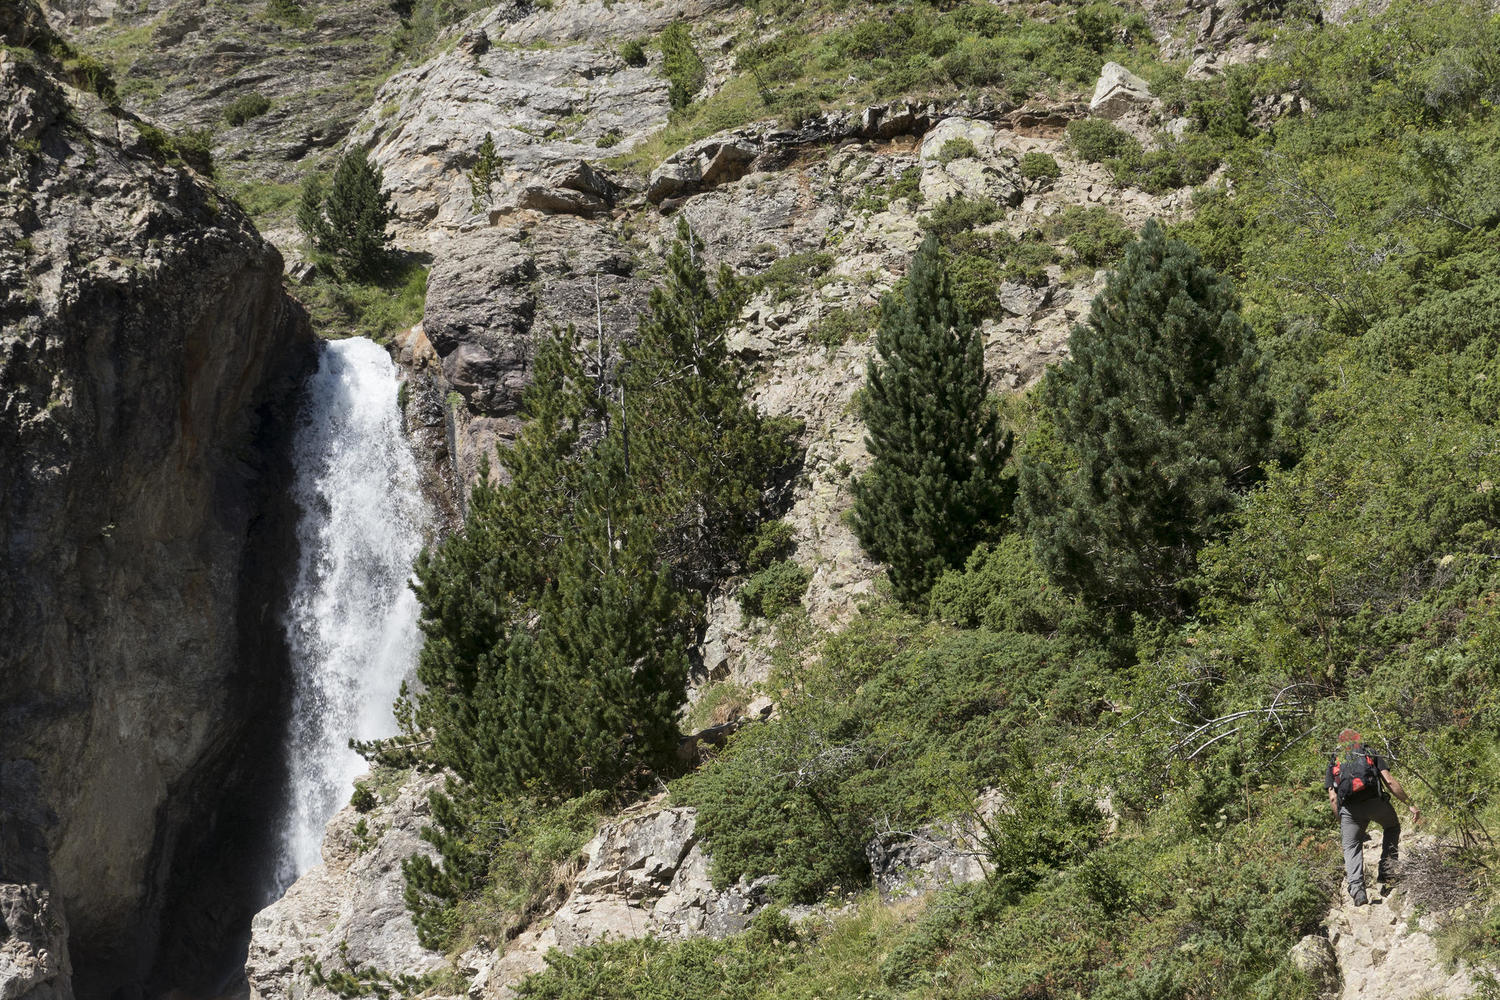 Lalarri waterfall in Pineta Valley of Ordesa